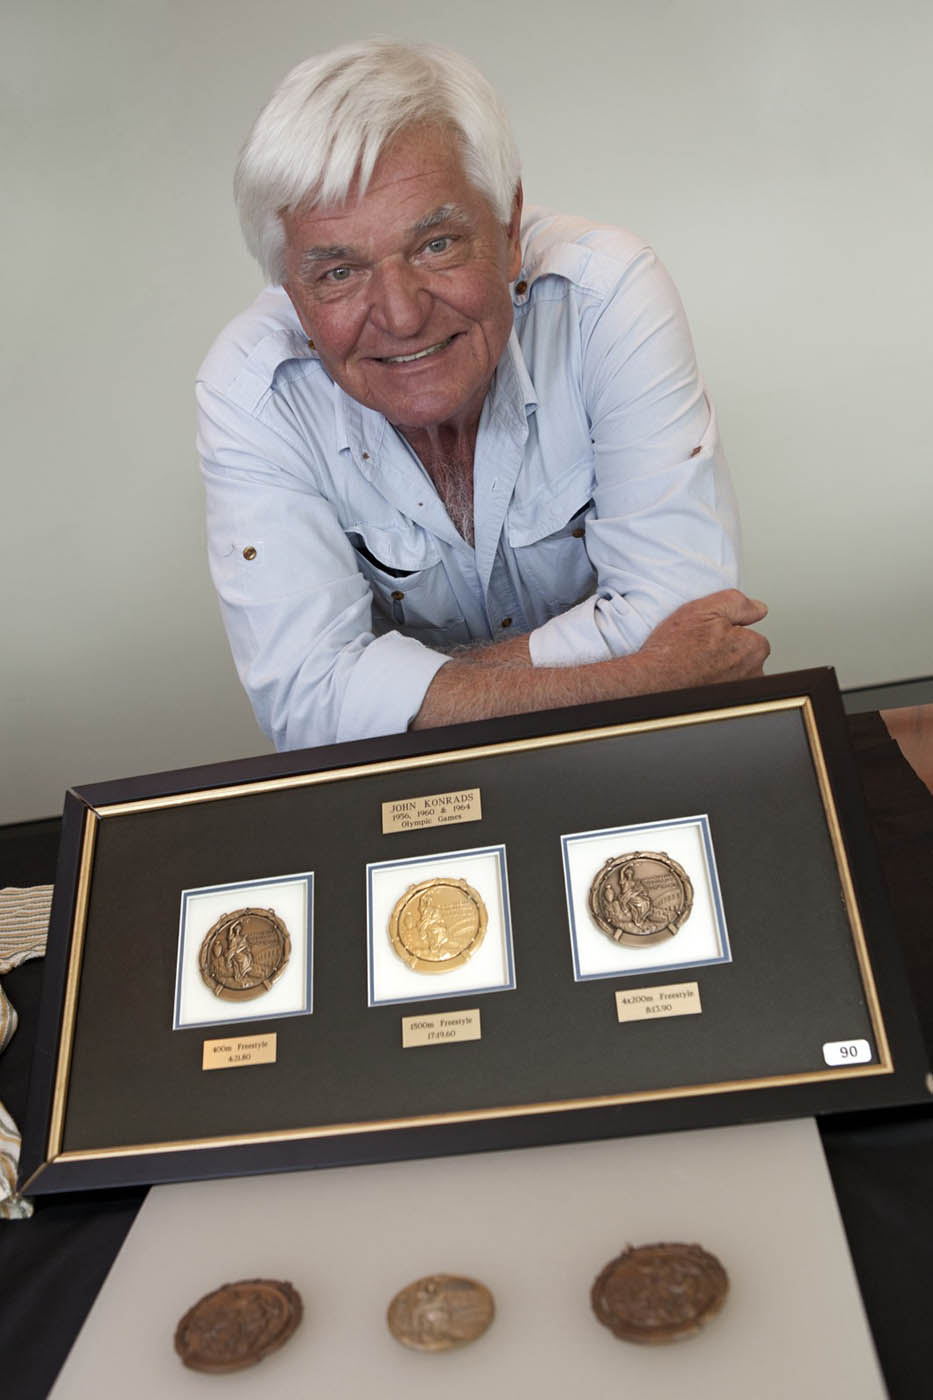 Colour photograph of a man resting with folded arms on a table. In front is a framed set of three circular medals. Another three medals are in the foreground. - click to view larger image